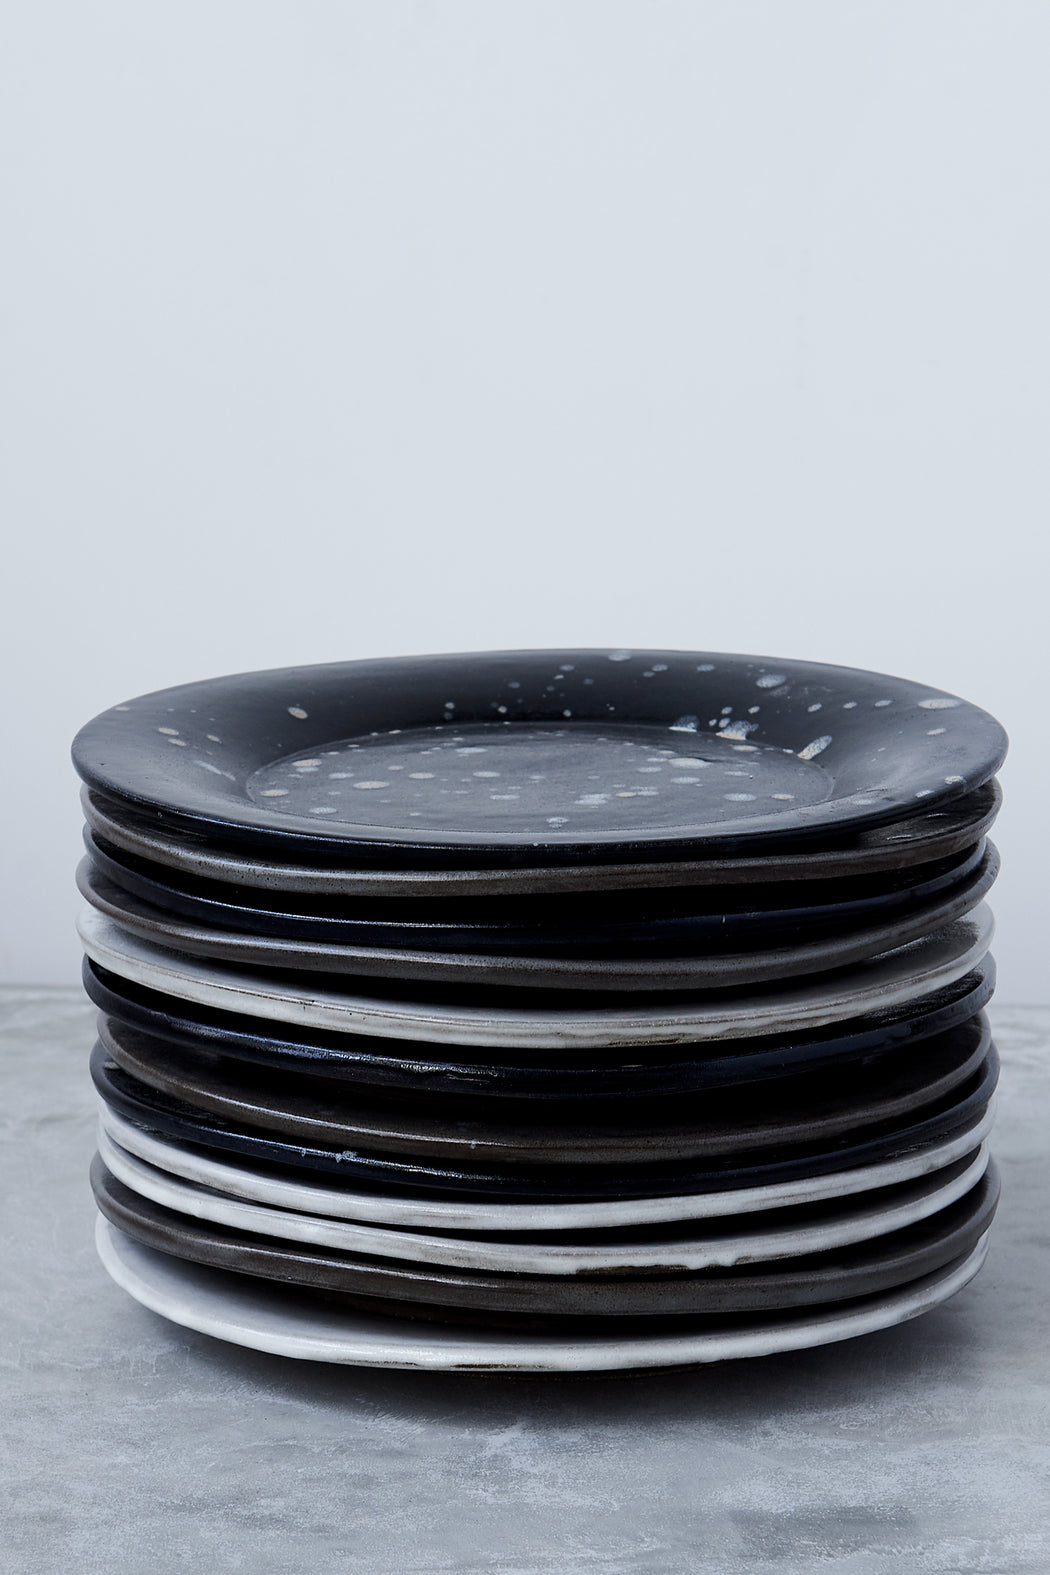 FD Pottery Splatter Plate - Black